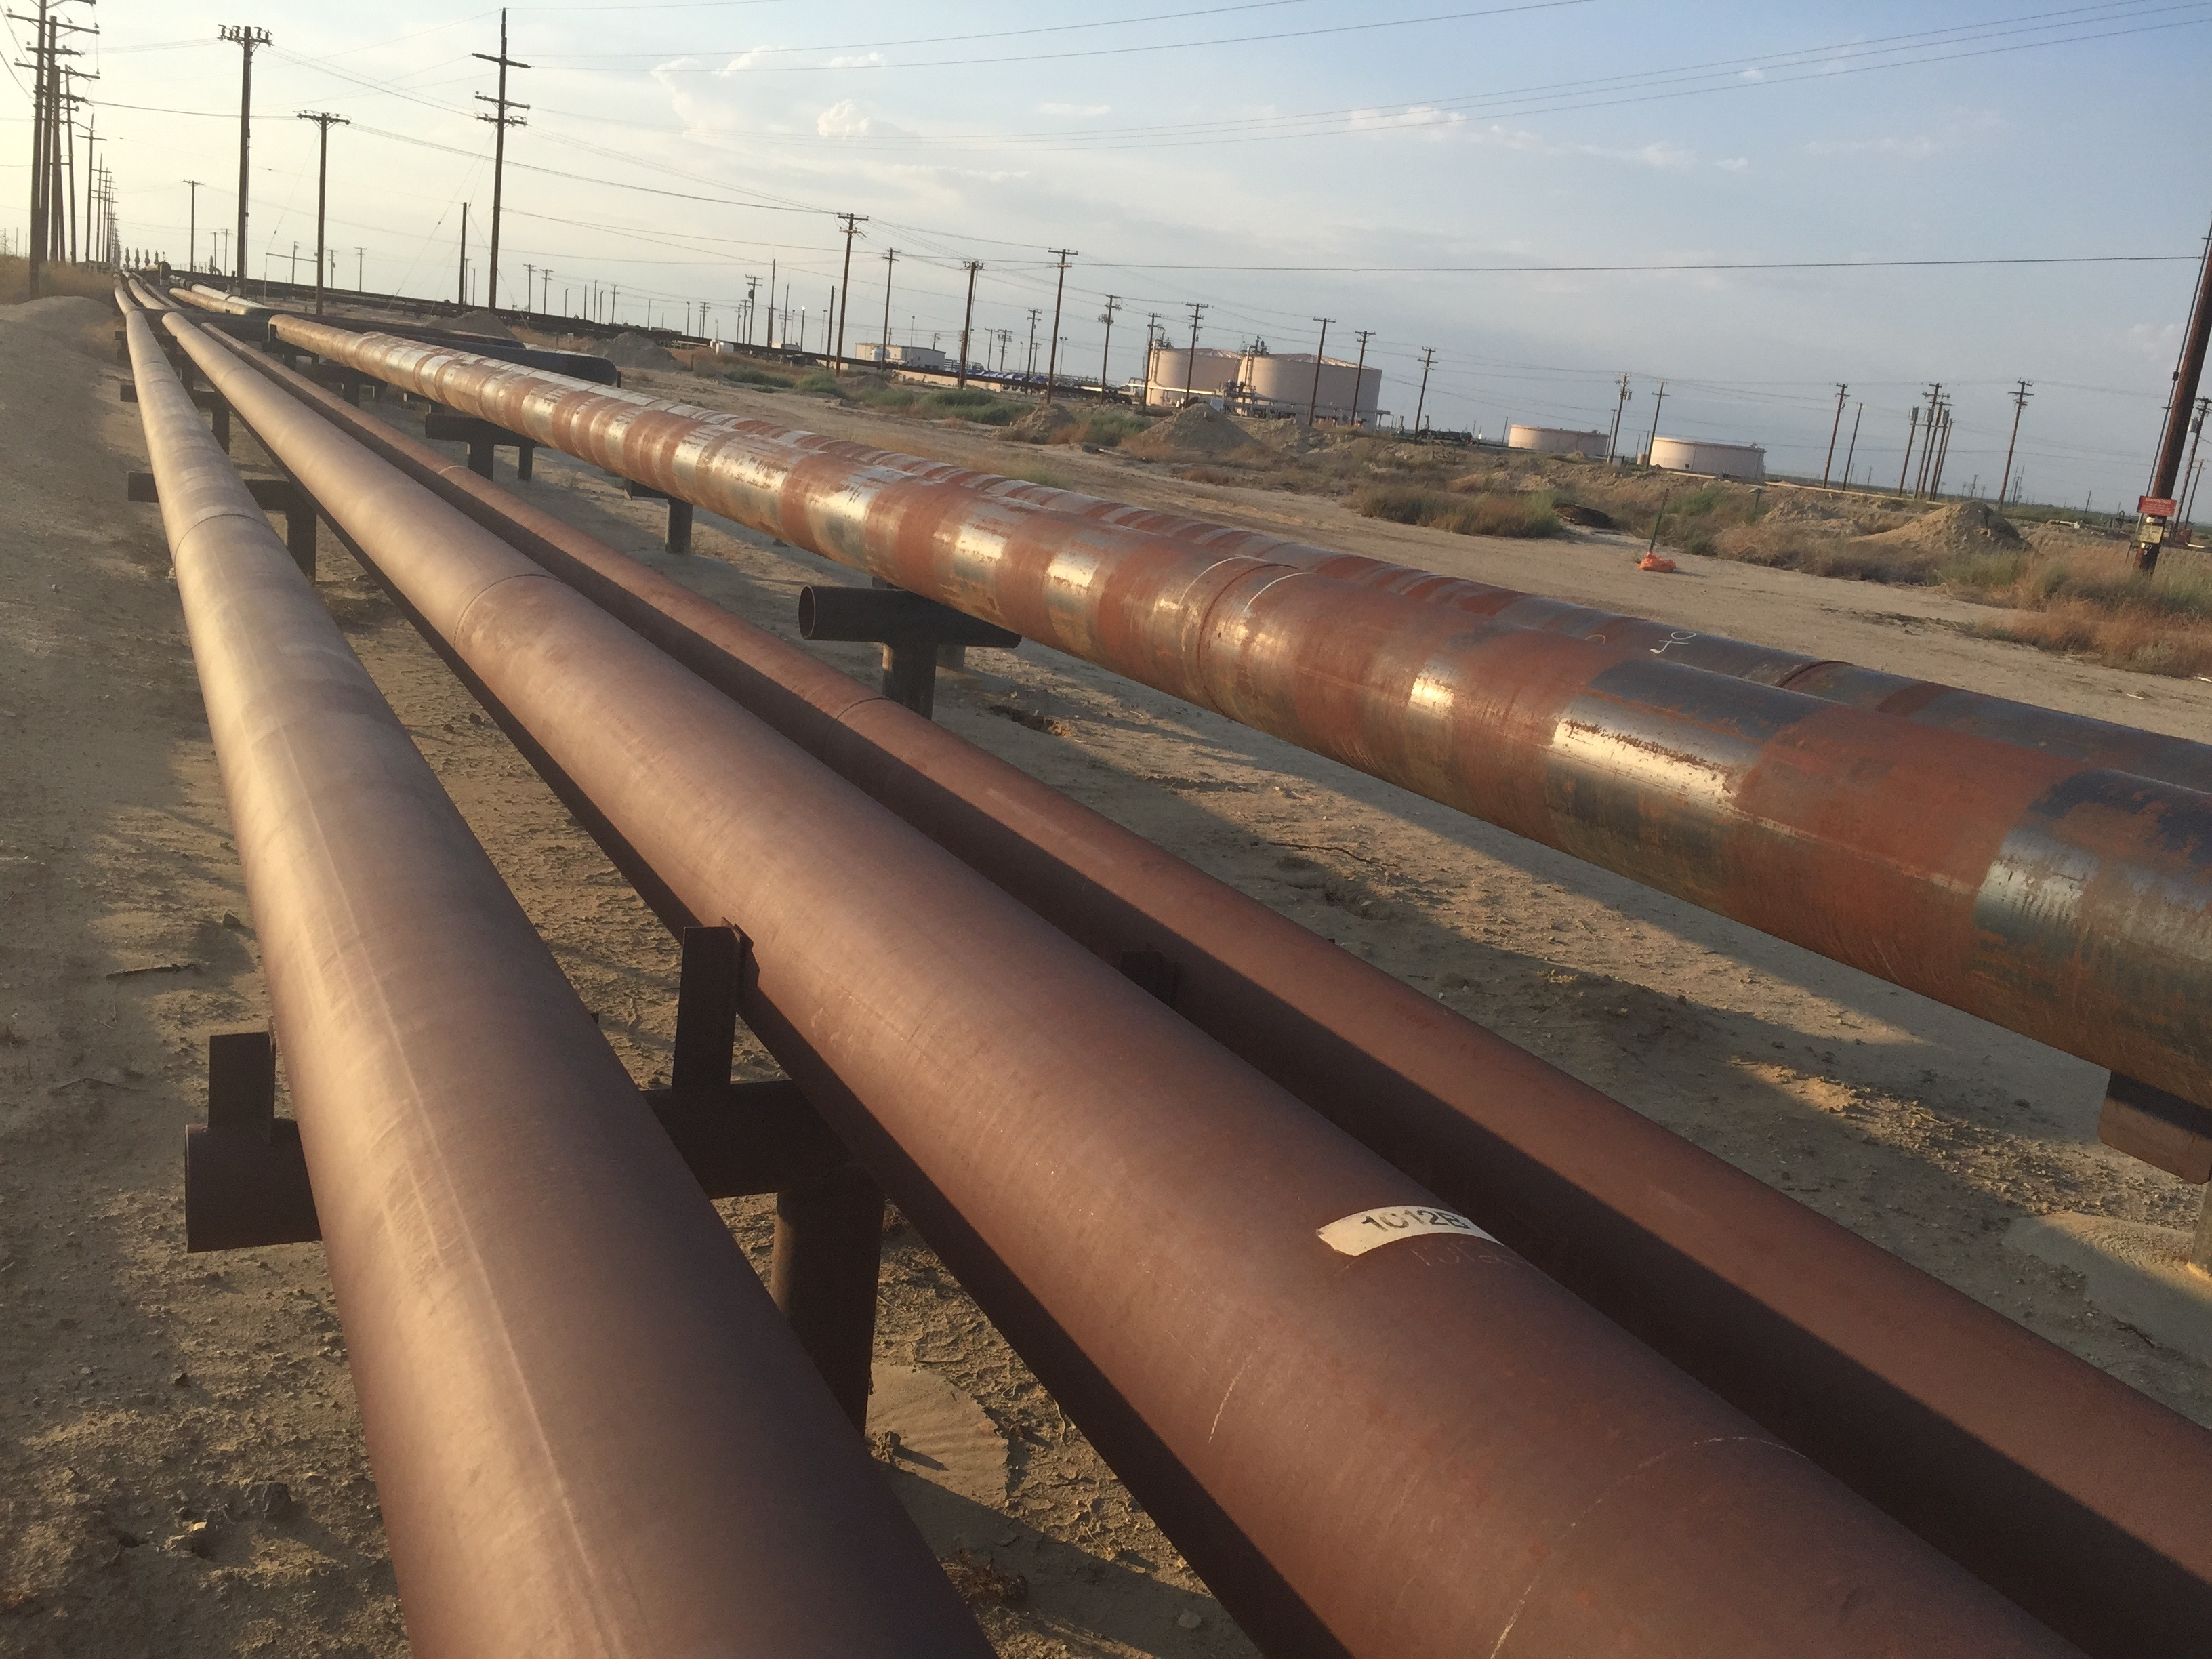 Pipelines, Belridge oil field. Credit Andrew Grinberg